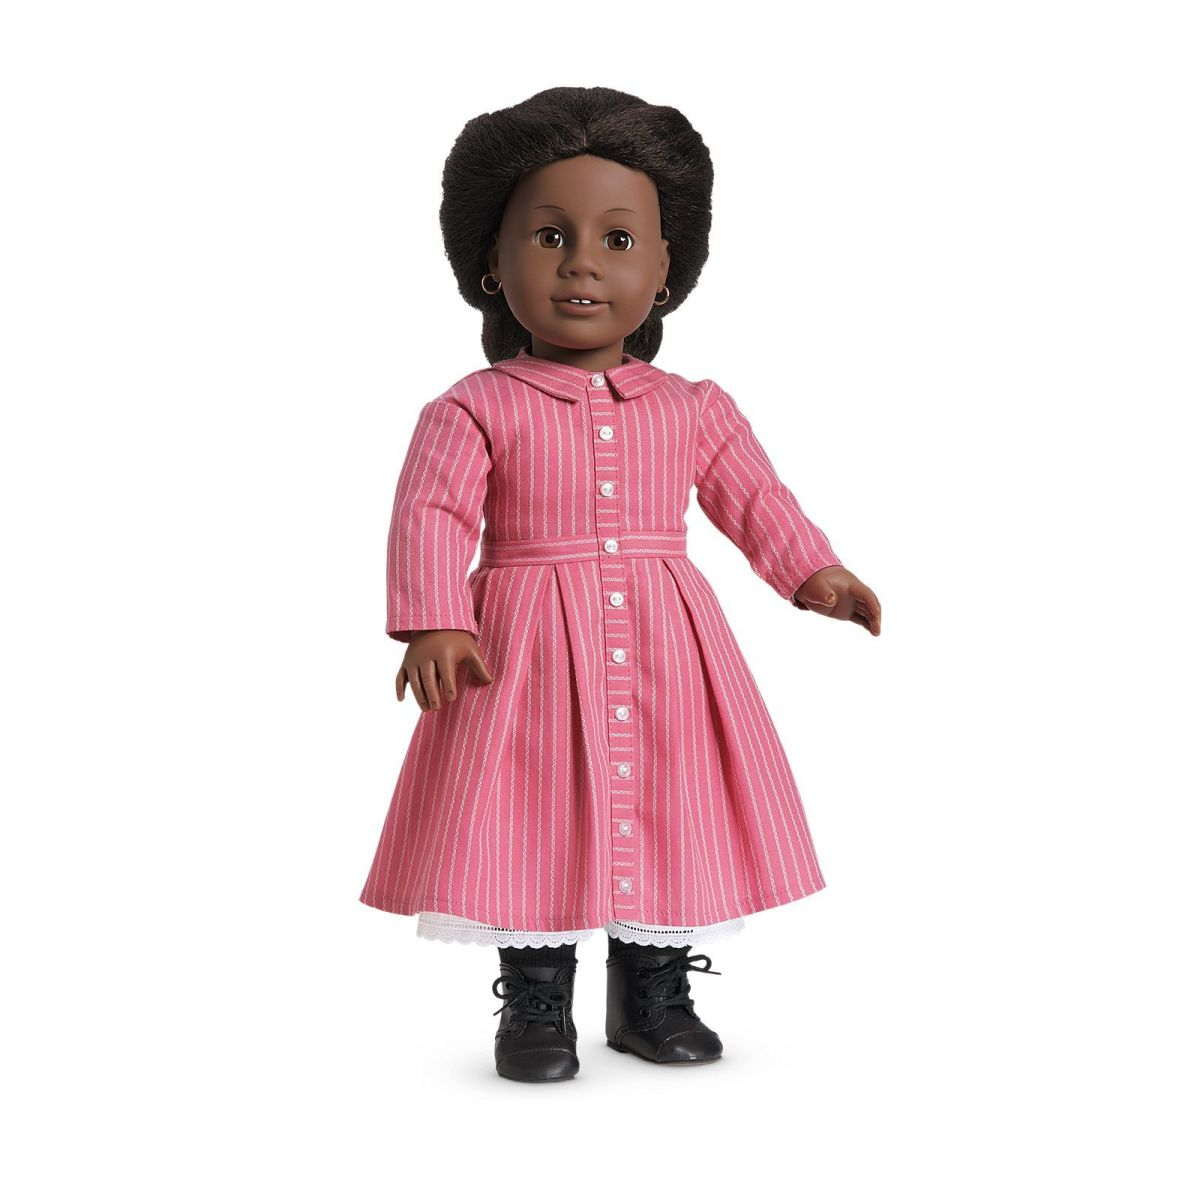 An Addy doll wearing her original Meet Outfit